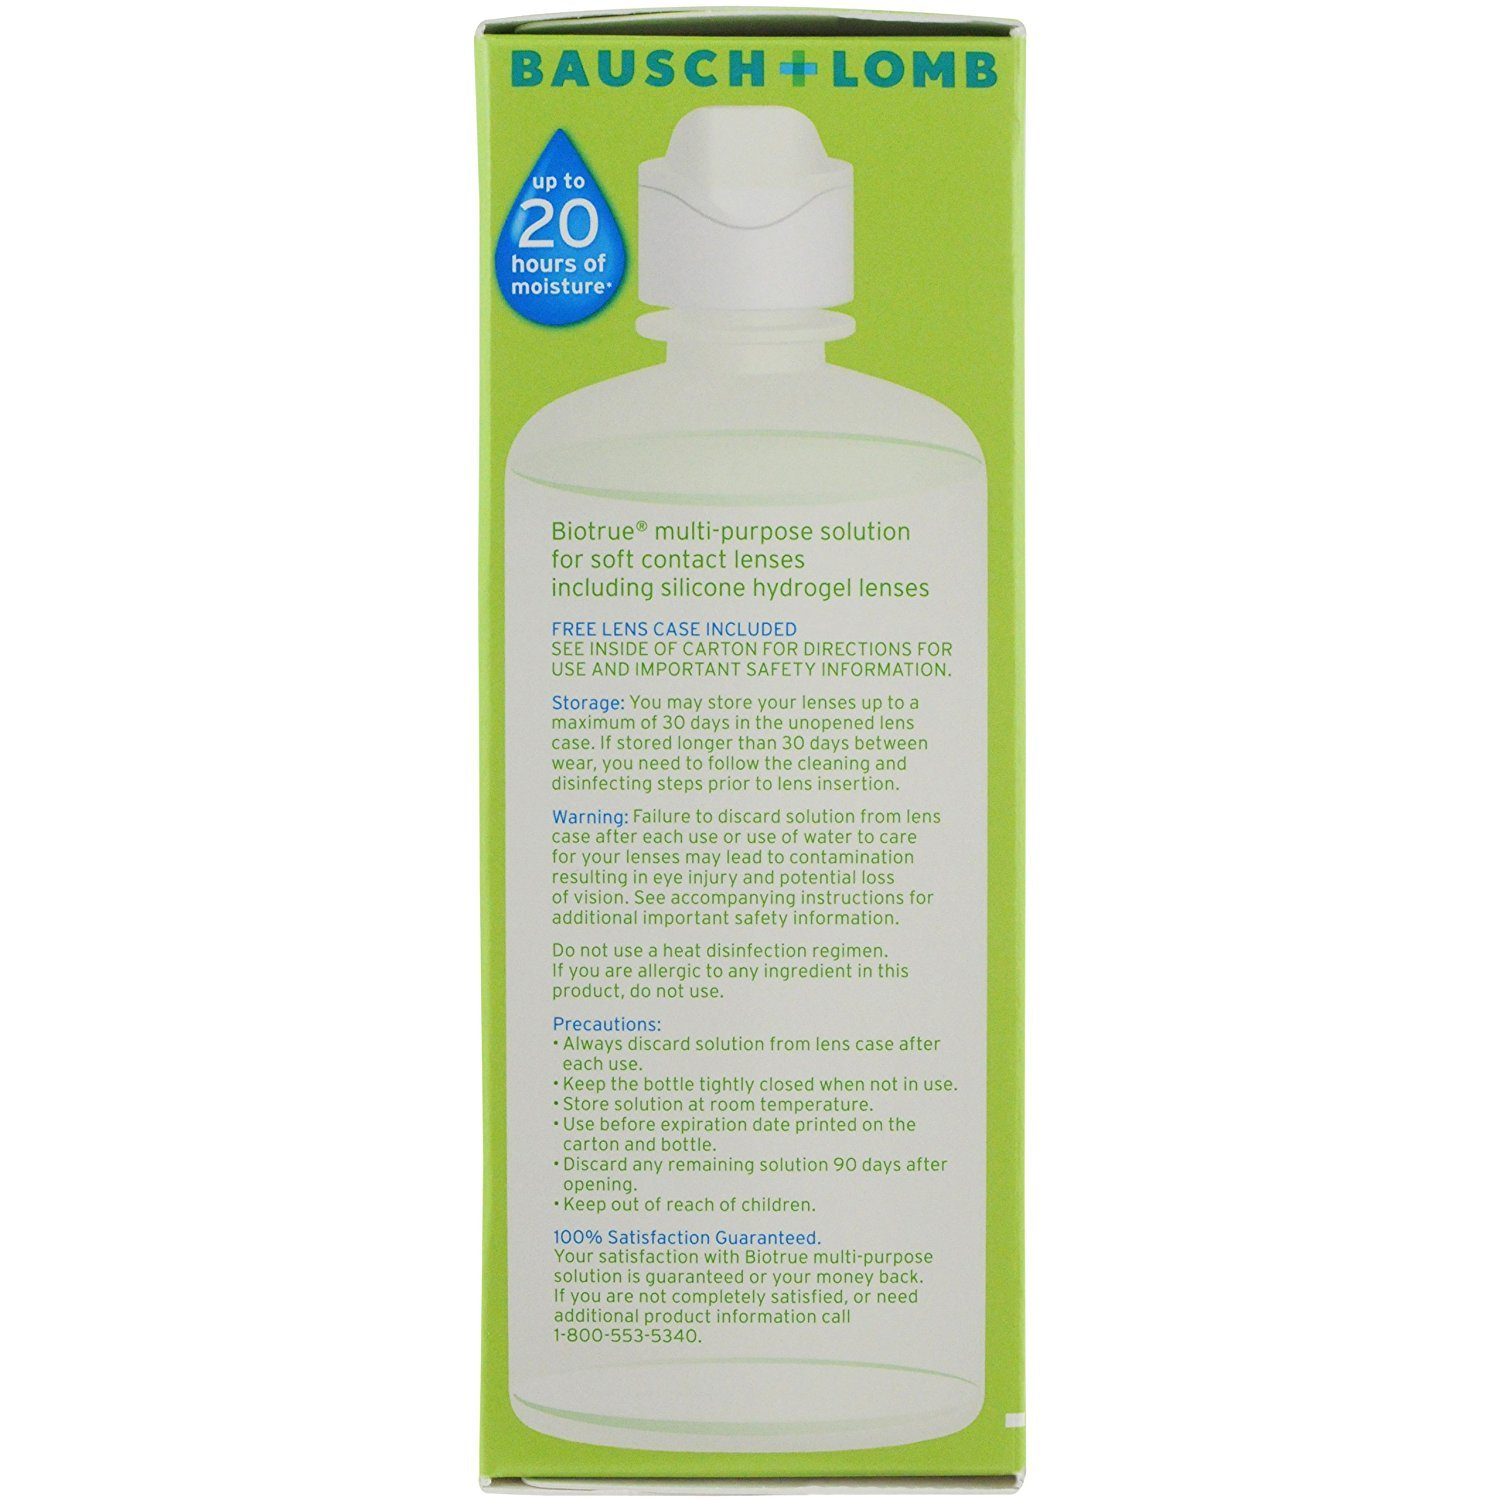 Bausch and Lomb BioTrue Soft Contact Lense & Silicone Hydrogel Lense Moisturizing Solution 10 oz, 2 Twin Packs